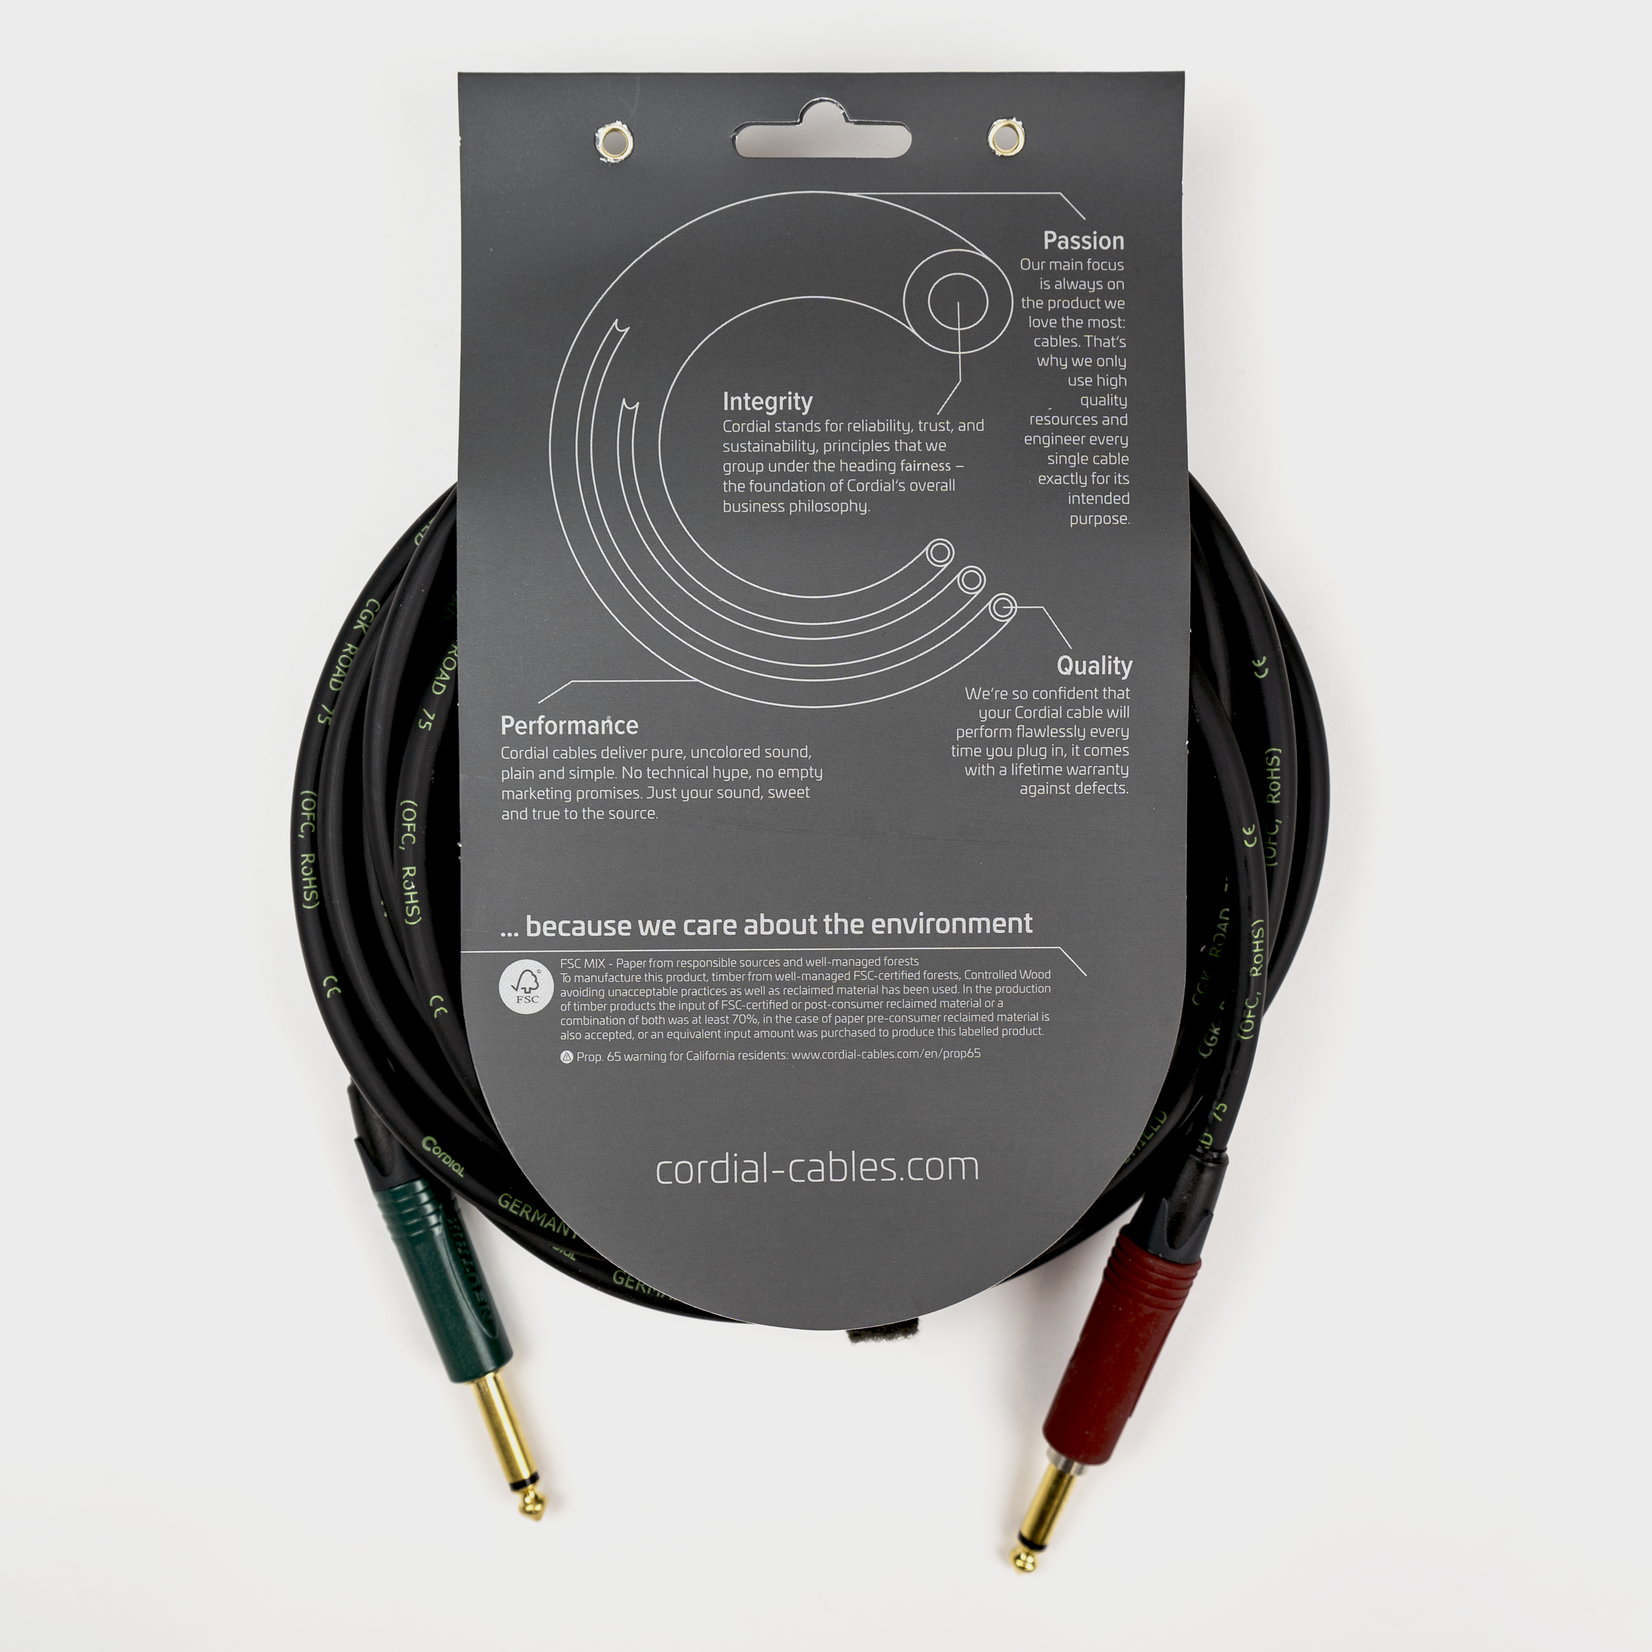 Cordial Cables Cordial 10-foot (3m) Premium Instrument Cable, Straight with SilentPLUG (CRI 3 PP-SILENT)